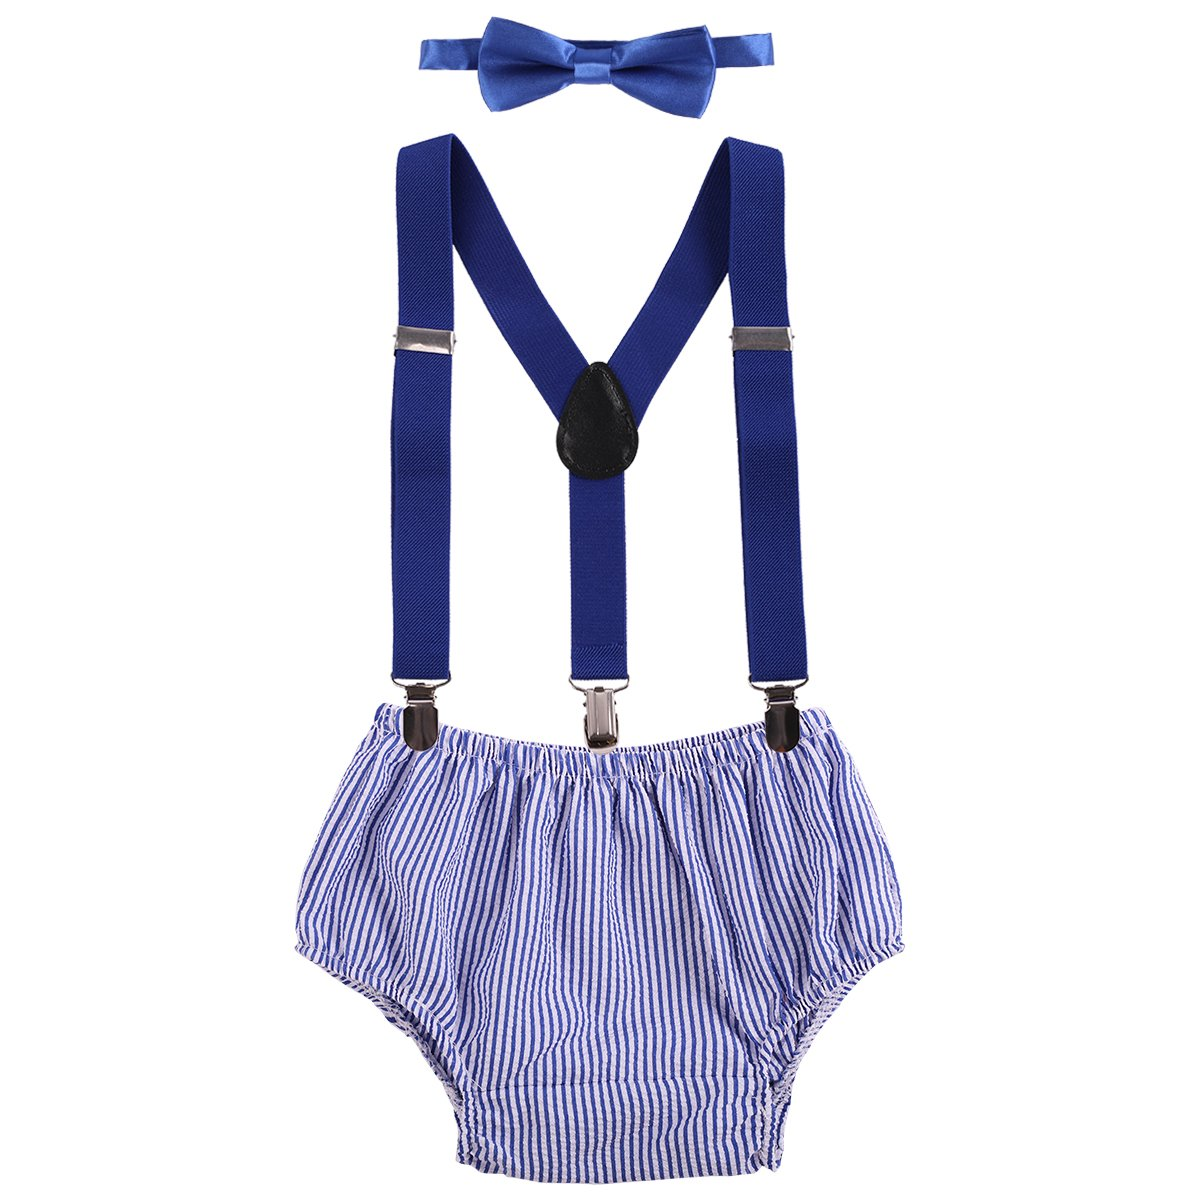 Baby Boys Cake Smash Outfit First Birthday Bloomers Bowtie Adjustable Y Back Suspenders Clothes set Royal Blue Striped One Size